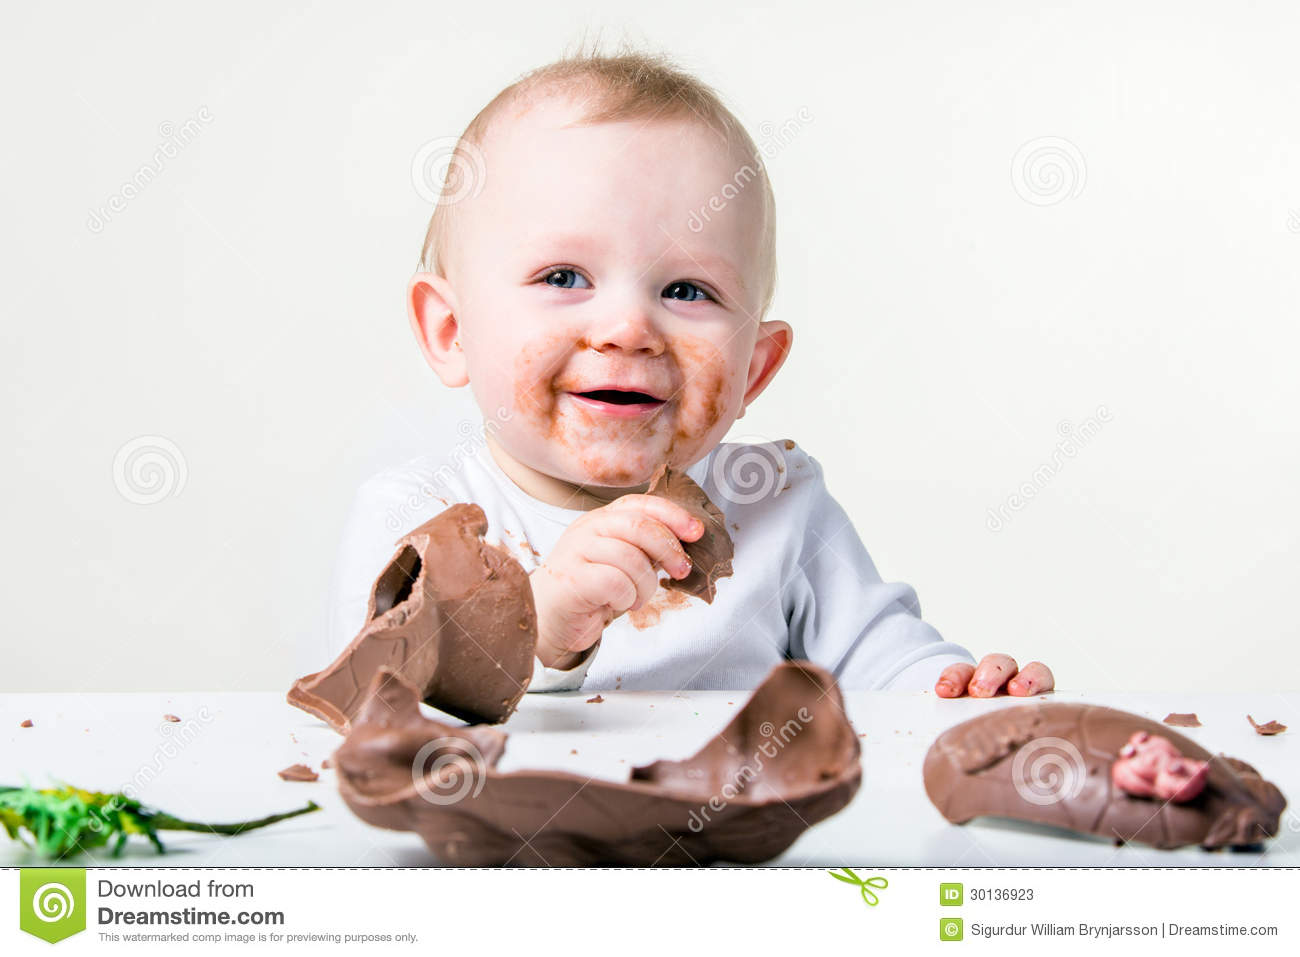 A boy eating chocolate